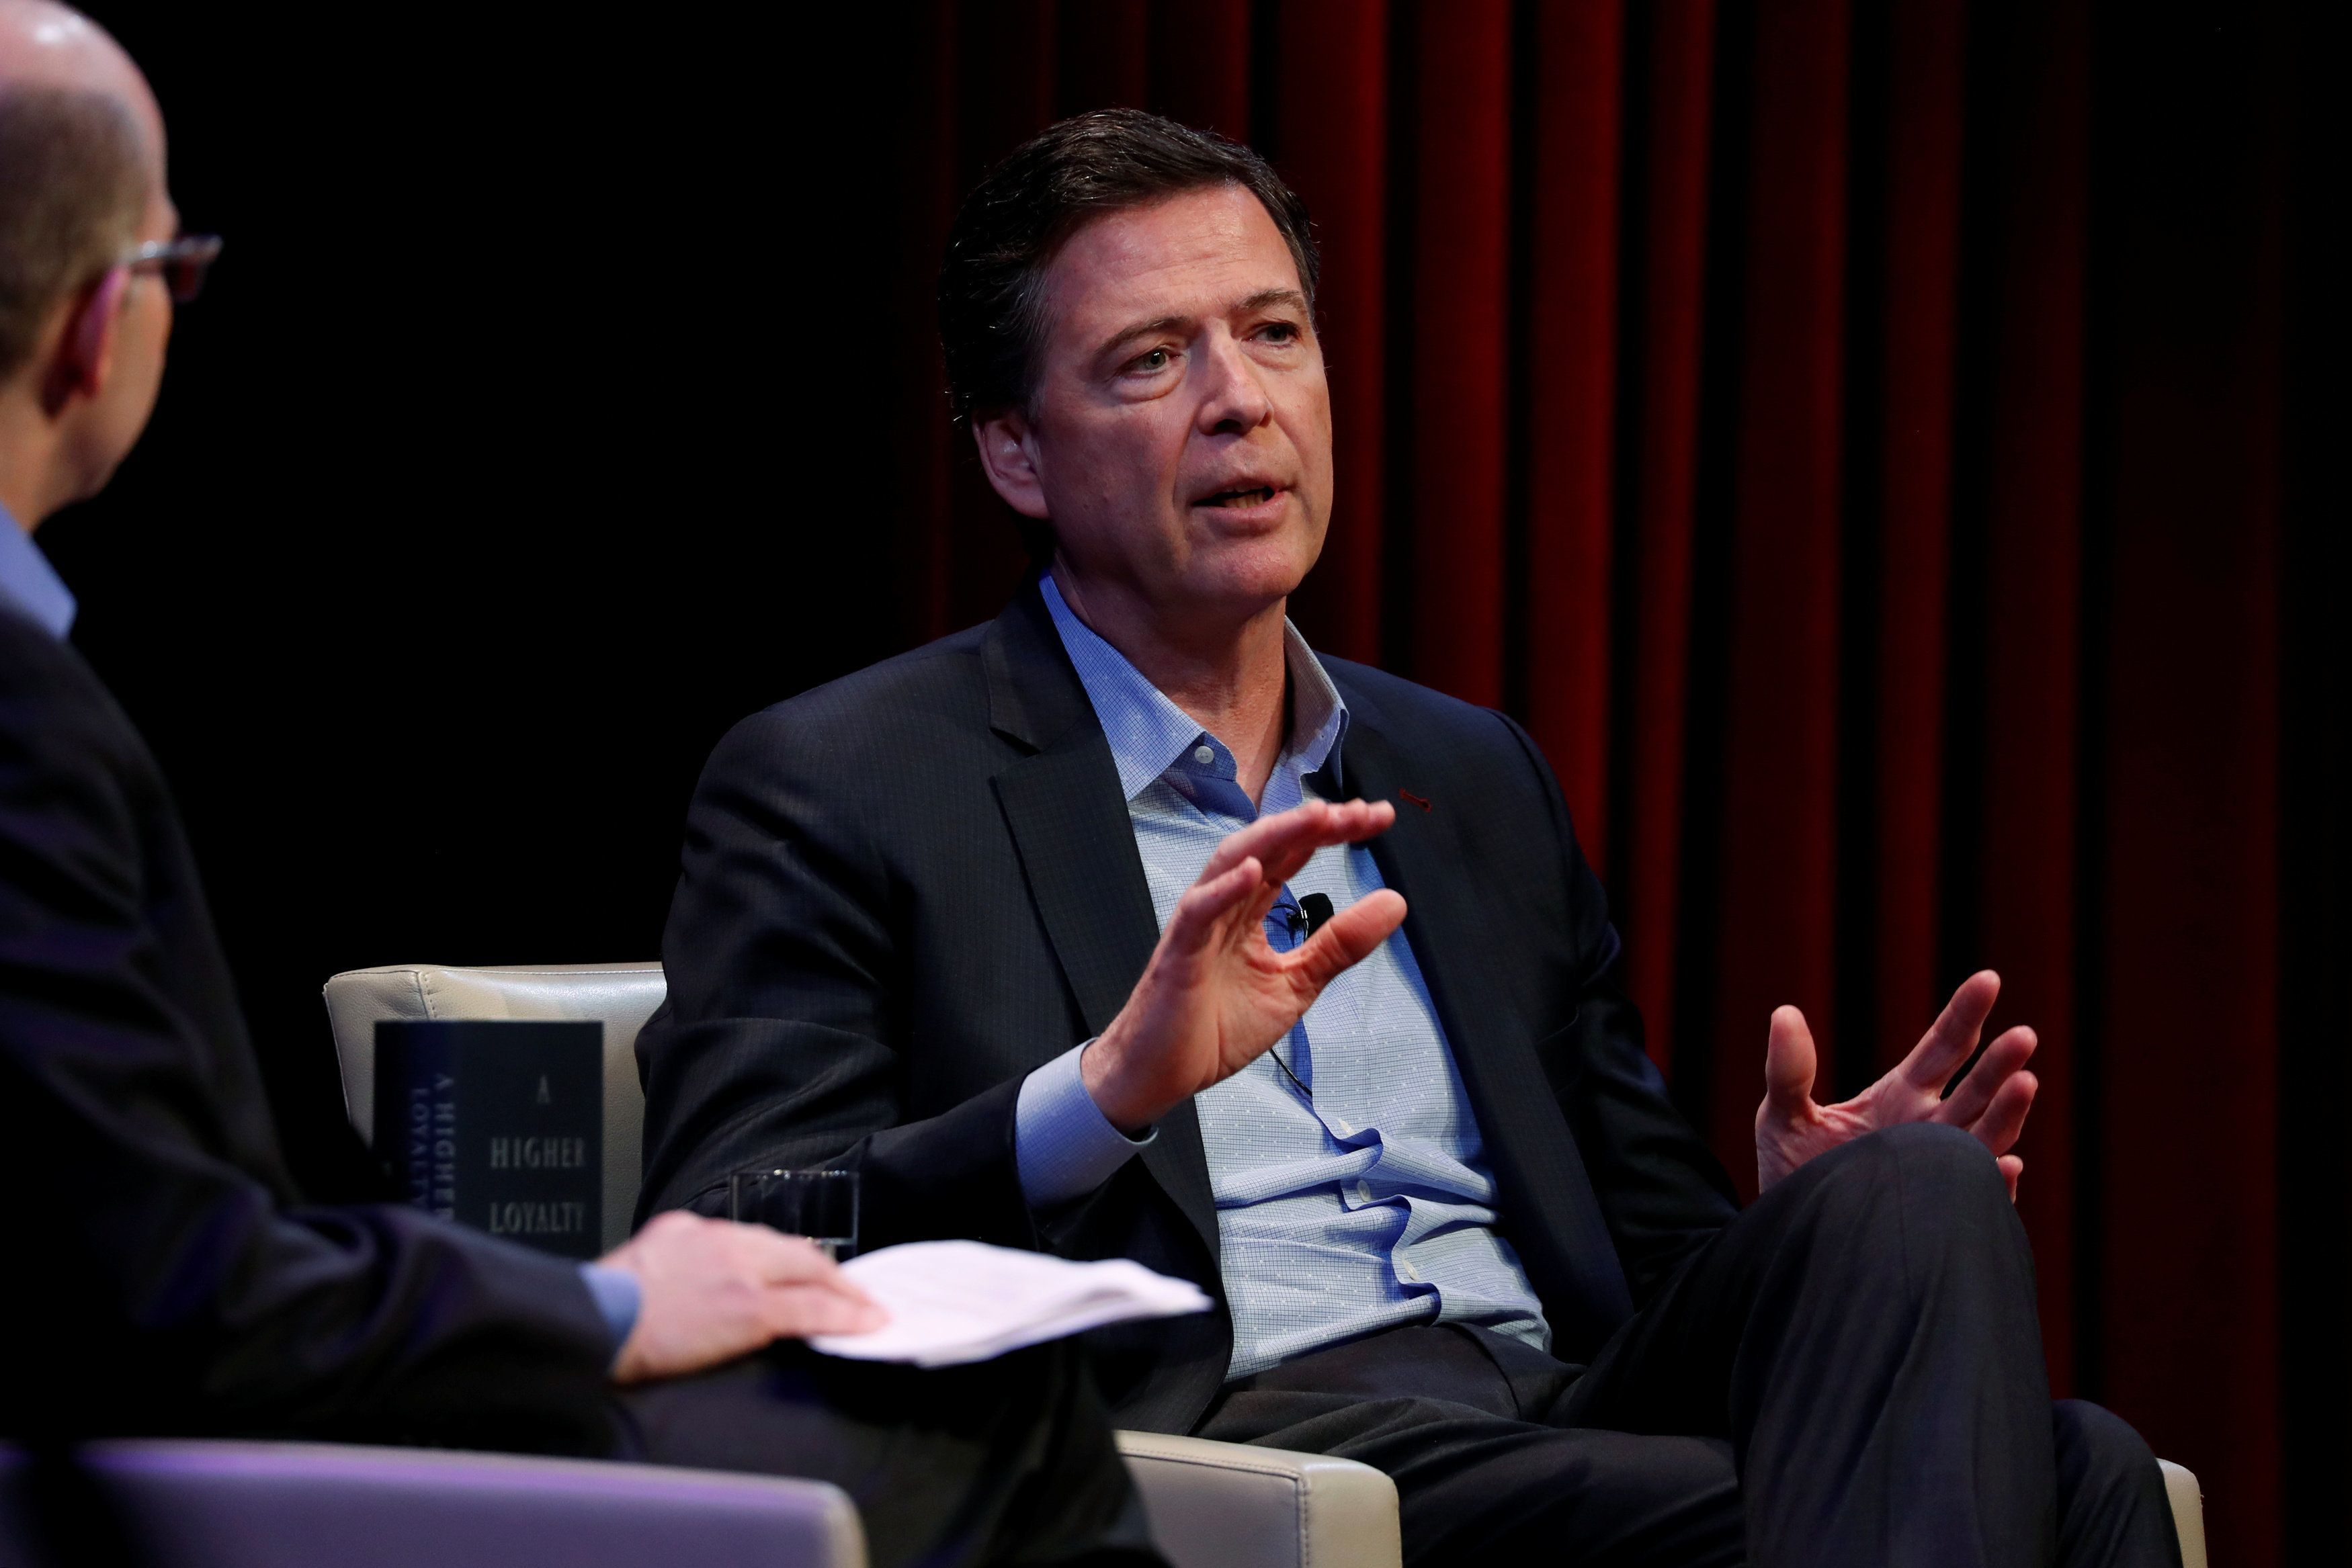 Former FBI director James Comey speaks about his book during an onstage interview with Axios  Executive Editor Mike Allen at George Washington University in Washington, U.S. April 30, 2018.  REUTERS/Jonathan Ernst